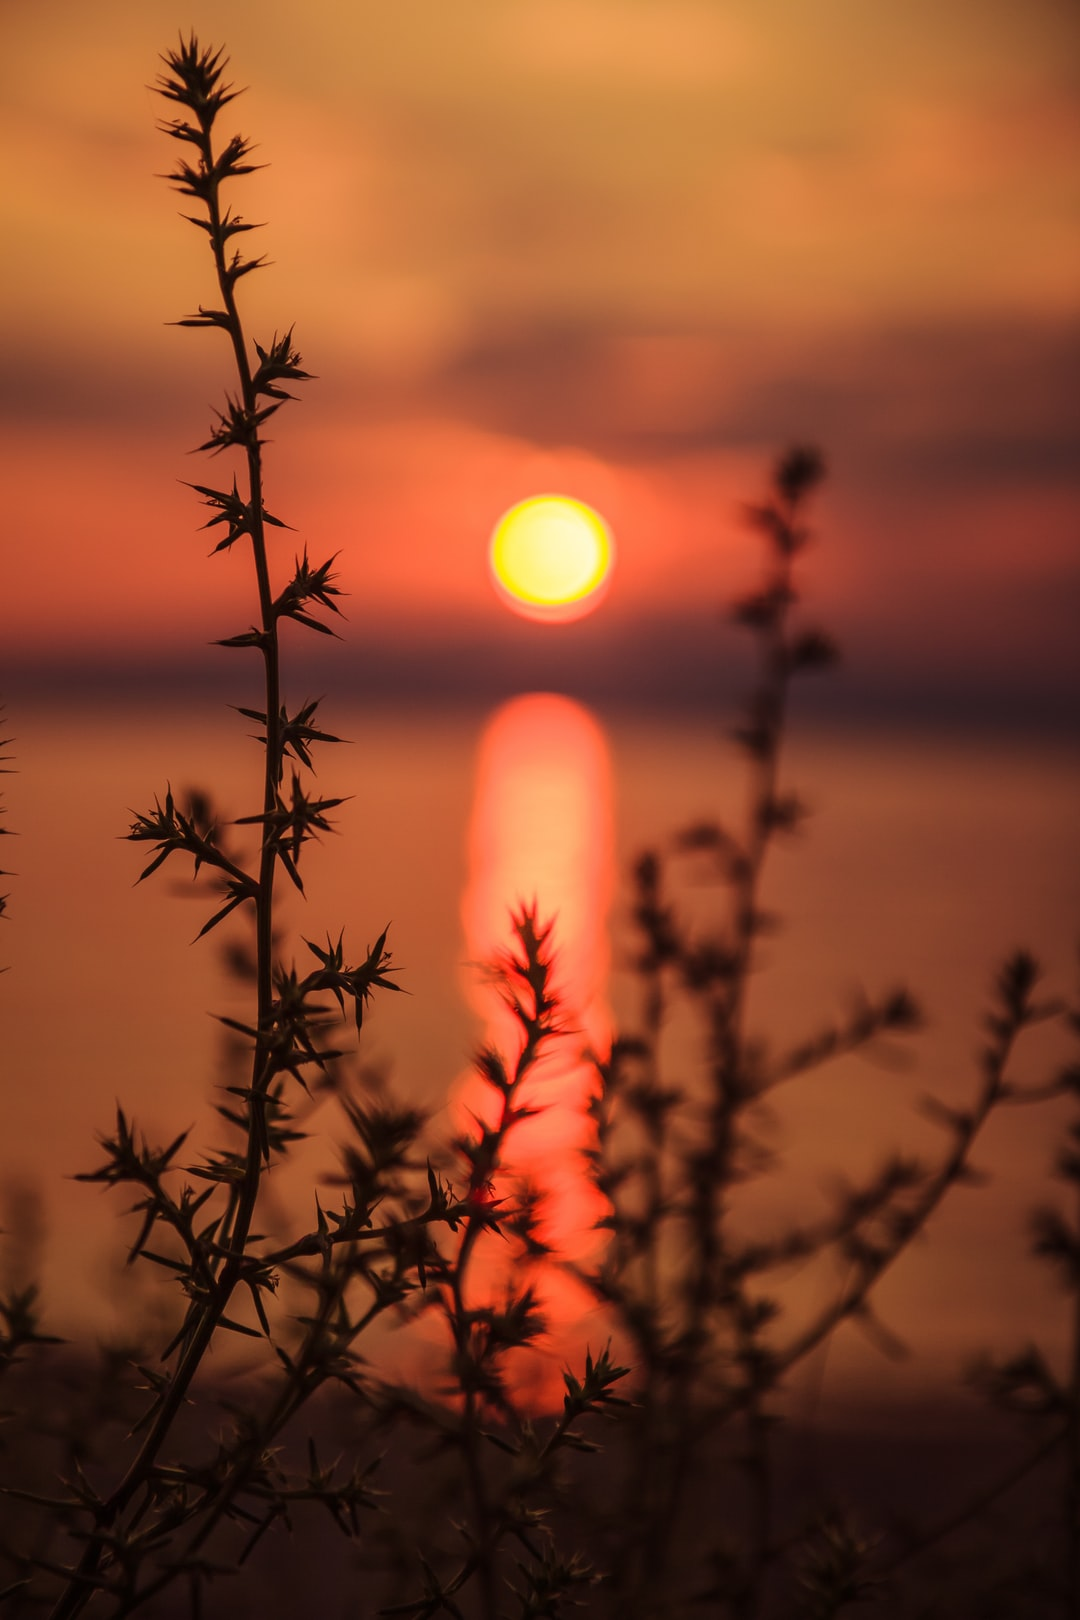 Sunset over the sea, as viewed through thorny weed